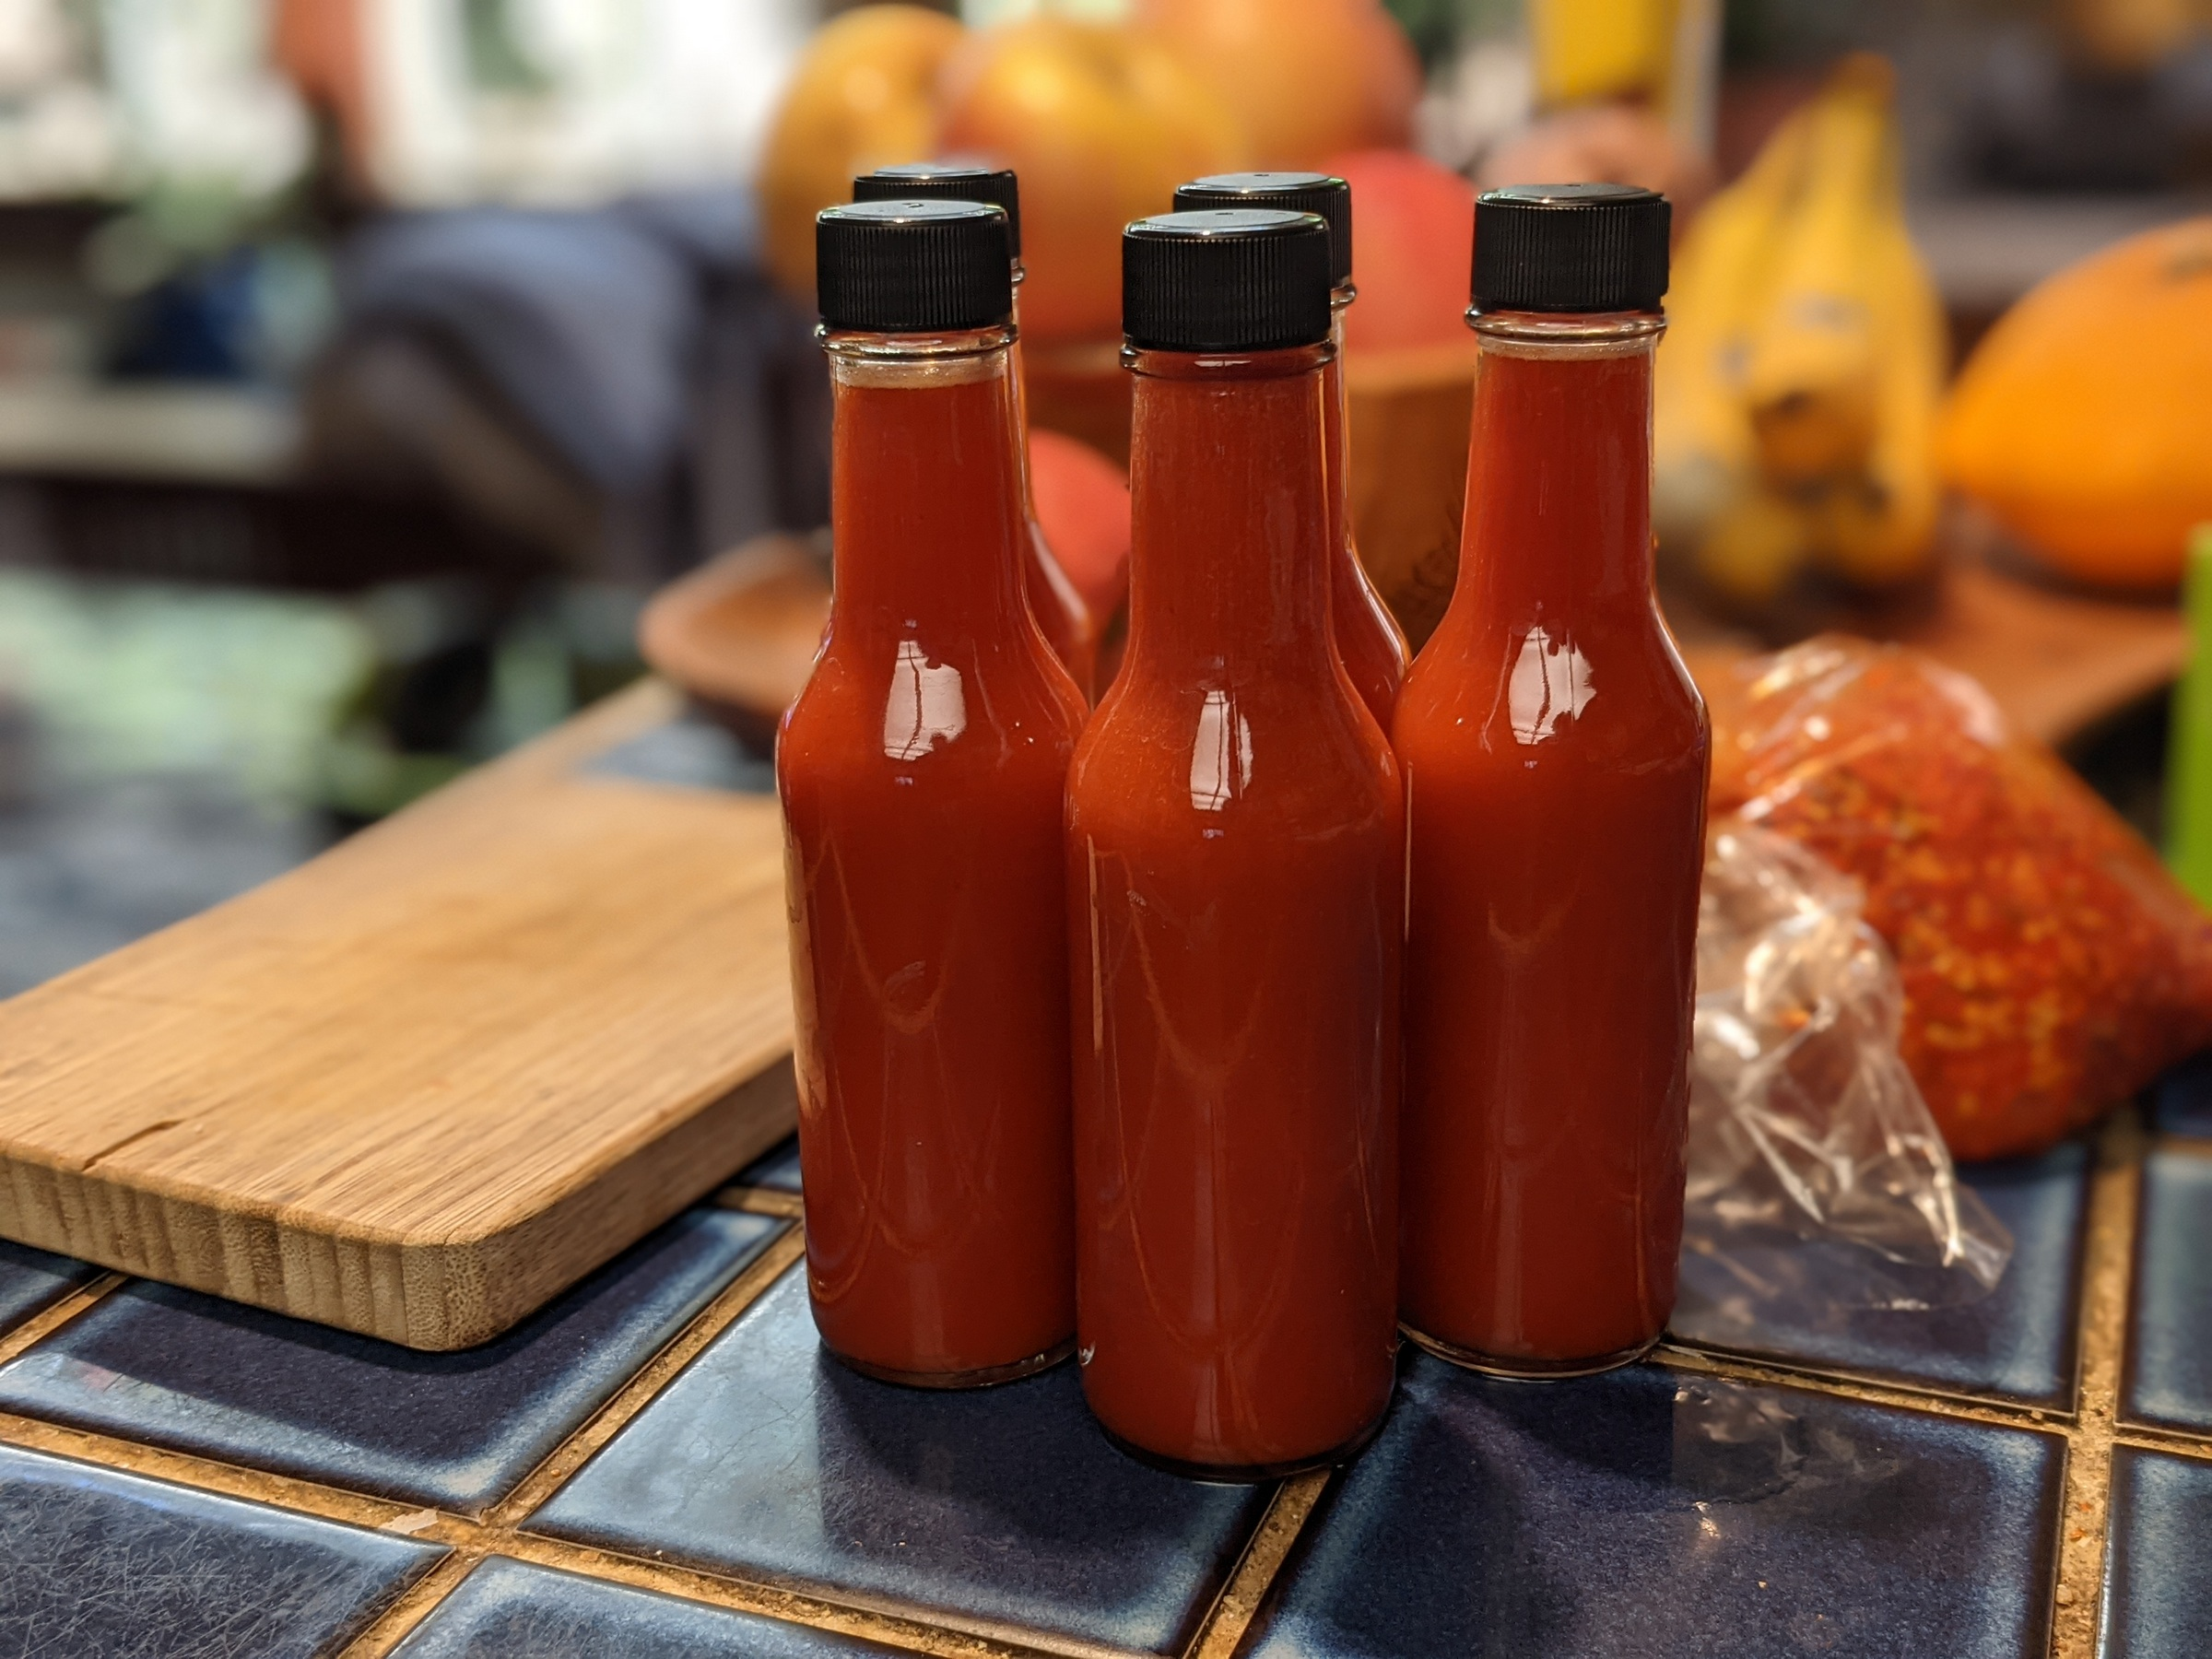 First round of fermented hot sauce in batch 21